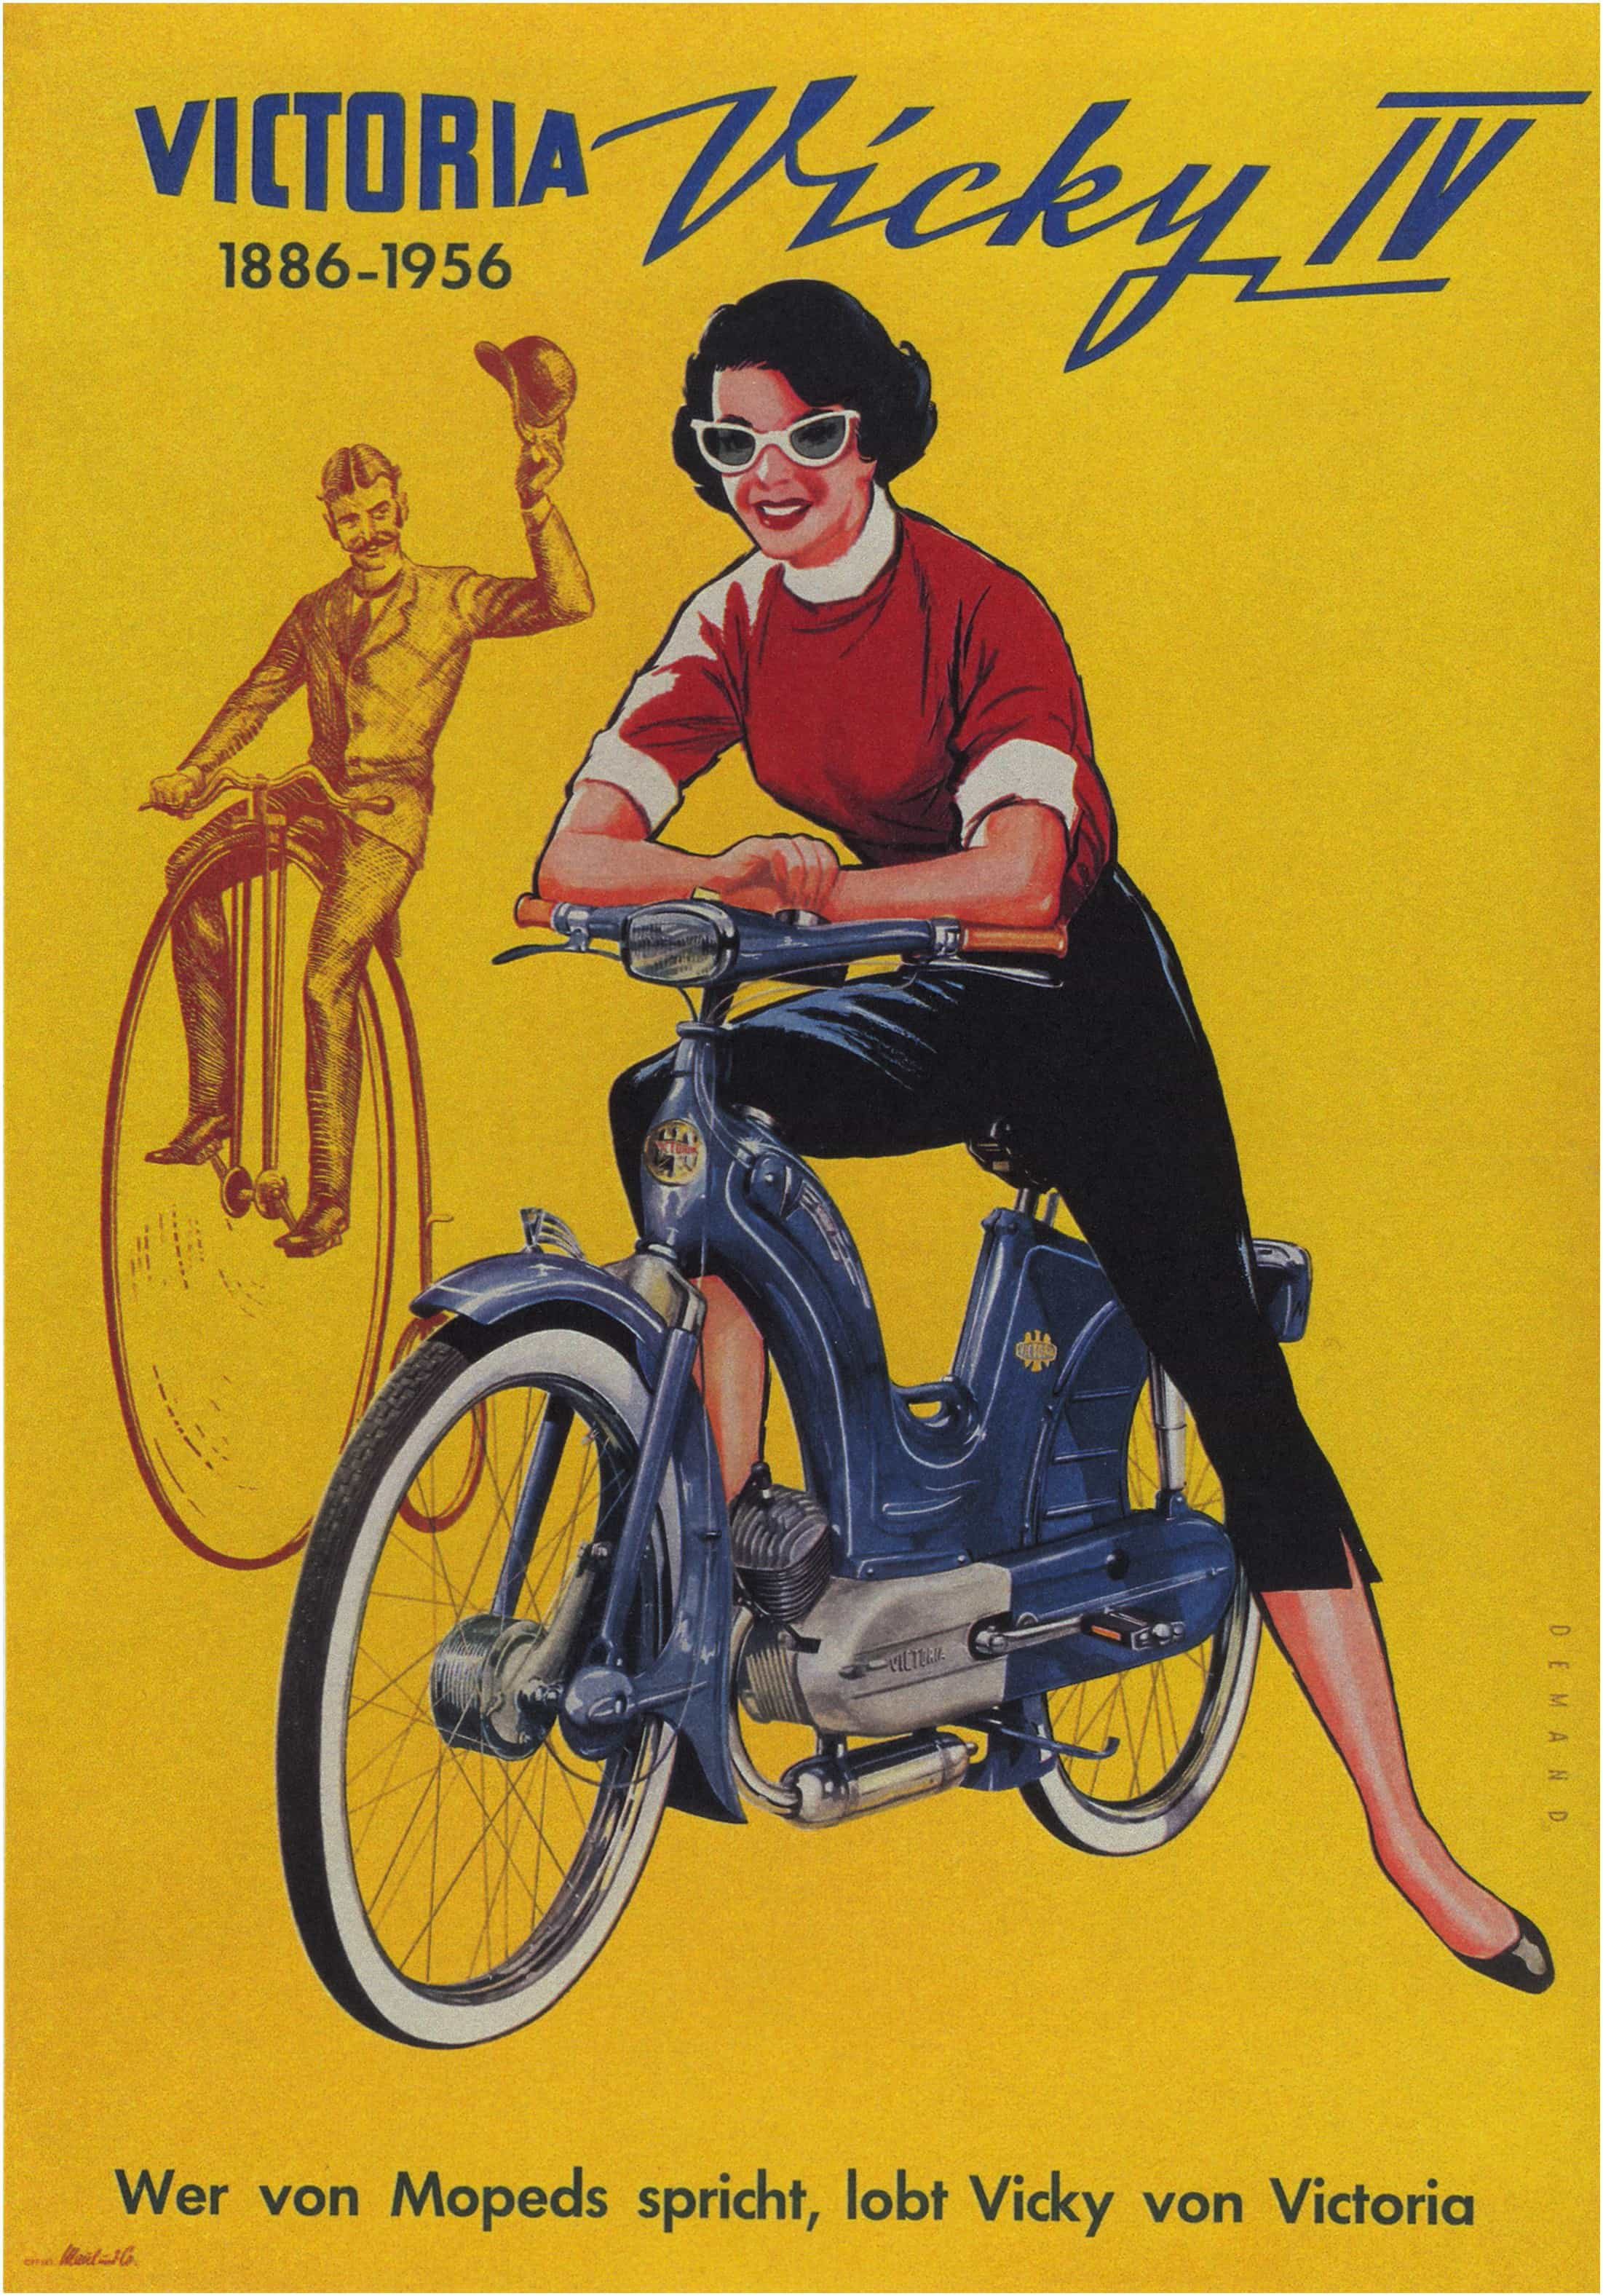 Vintage Motorcycle Poster Victoria Vicky IV 1956